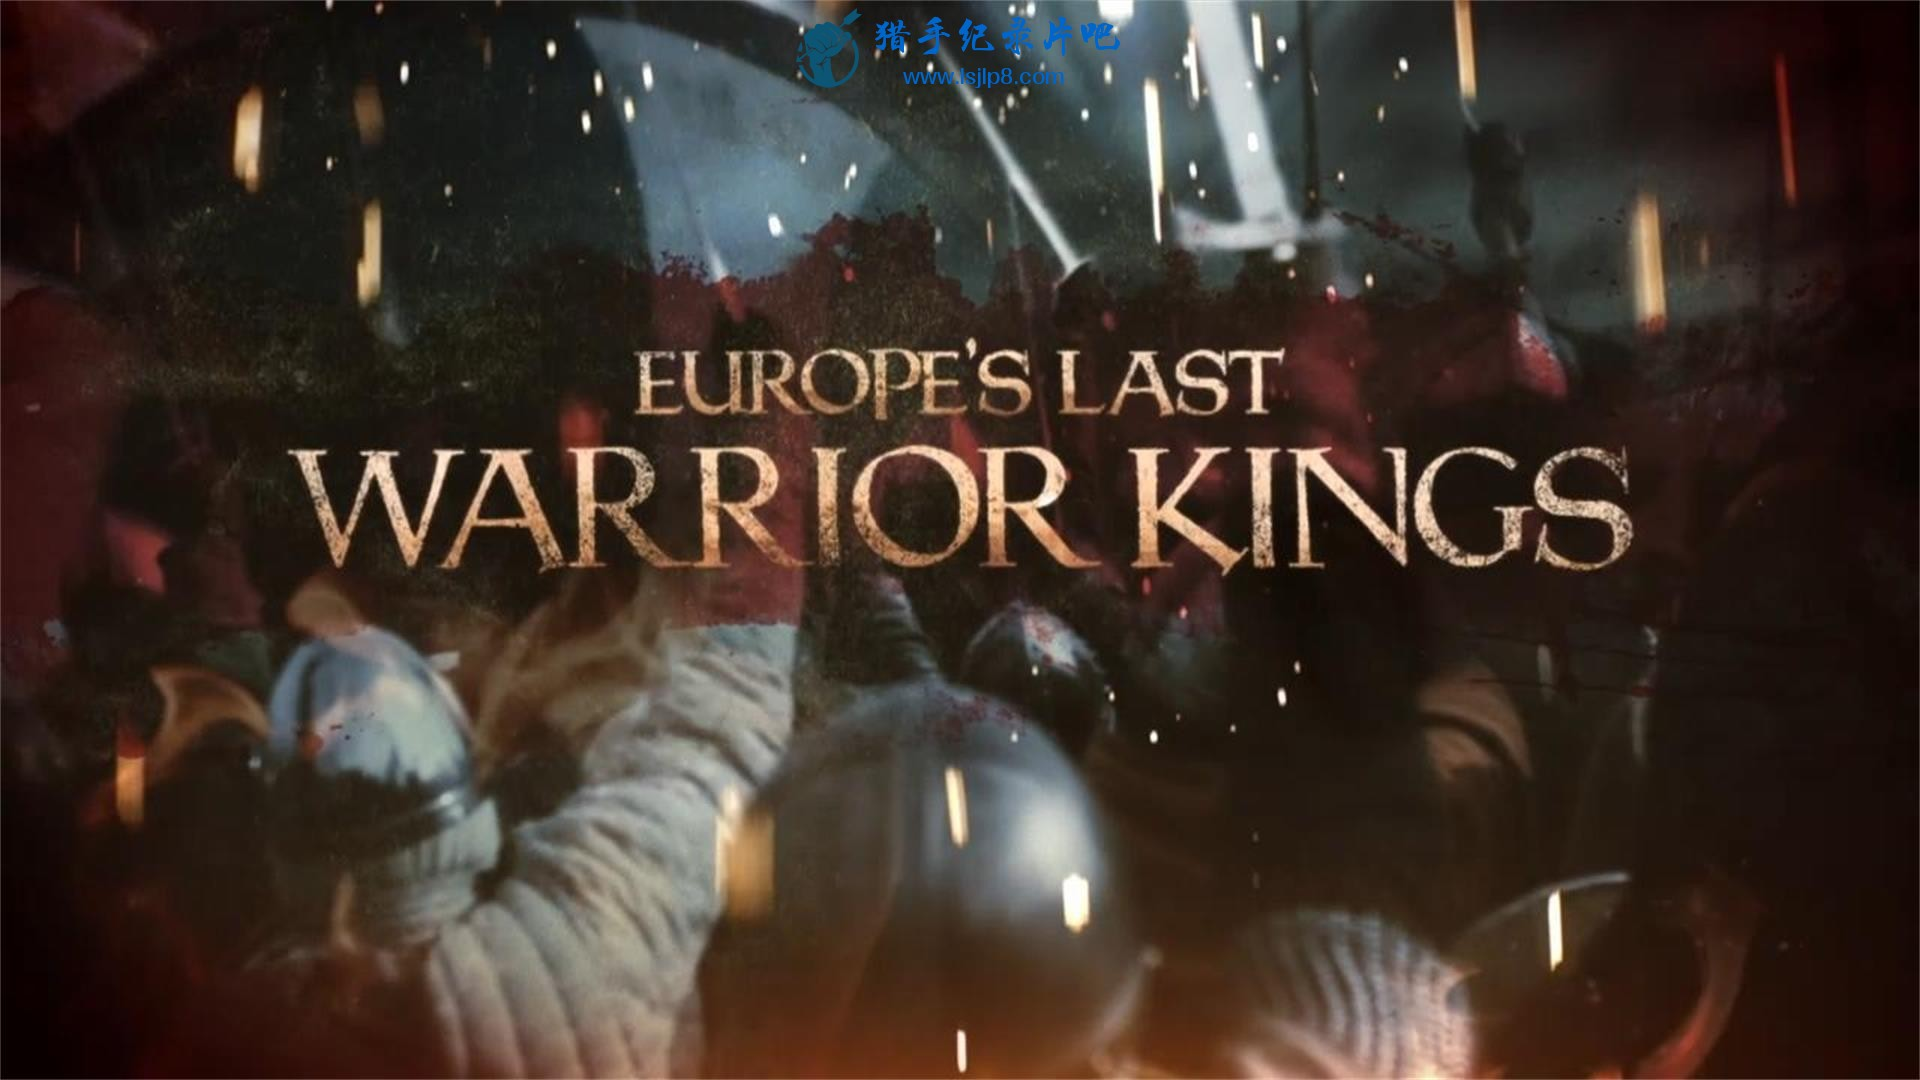 europes.last.warrior.kings.s01e01.20200304110229.jpg